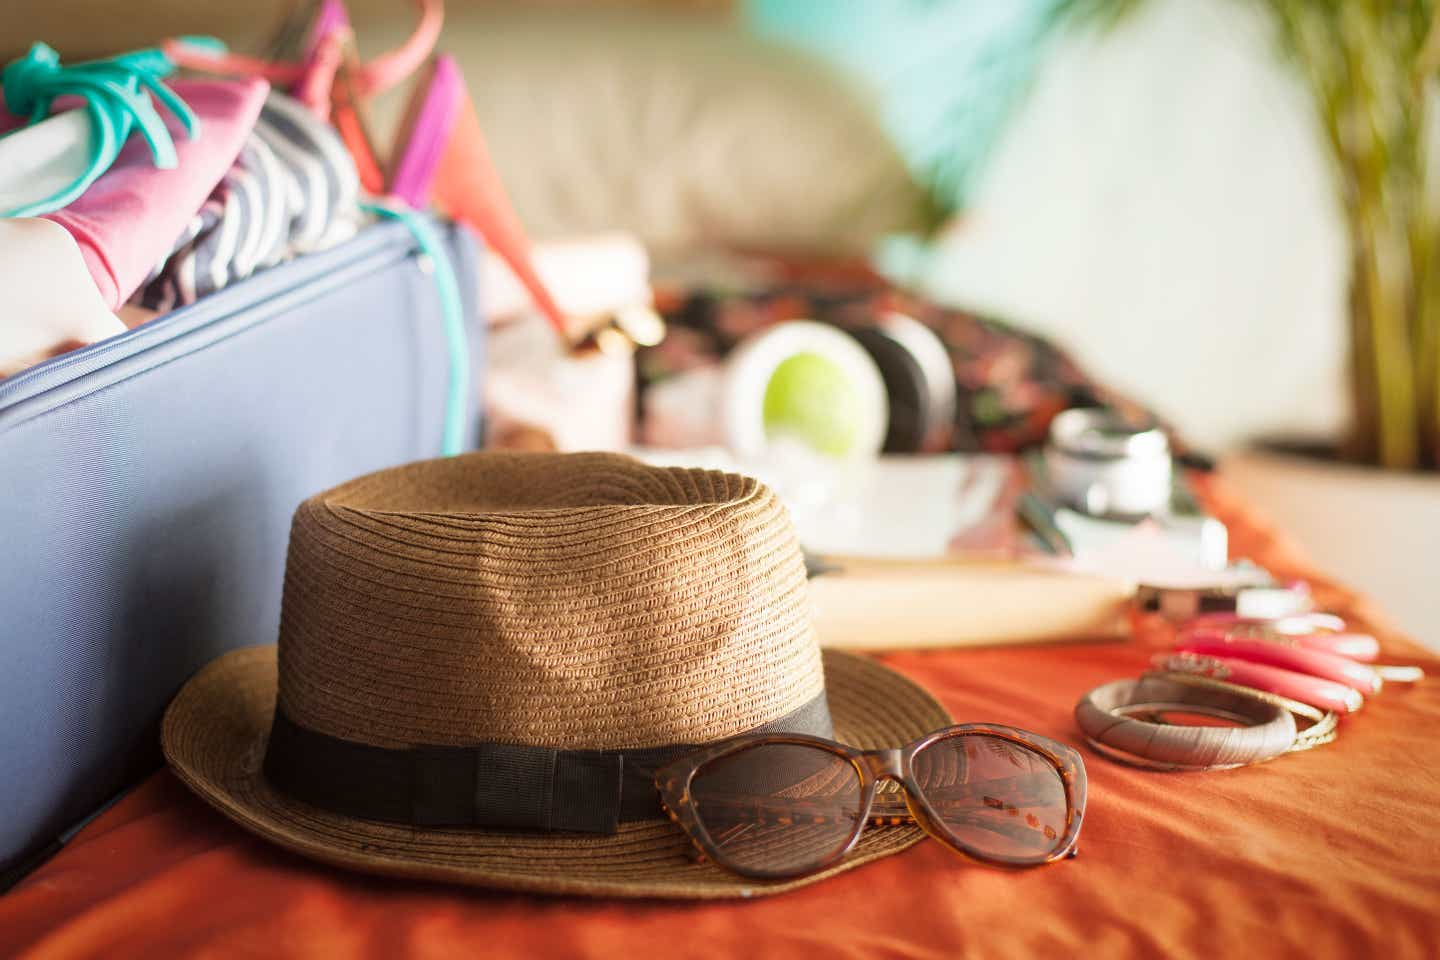 Various items, including a straw fedora, sunglasses, and wooden bangle bracelets, are placed outside of a navy suitcase on an orange bedspread.